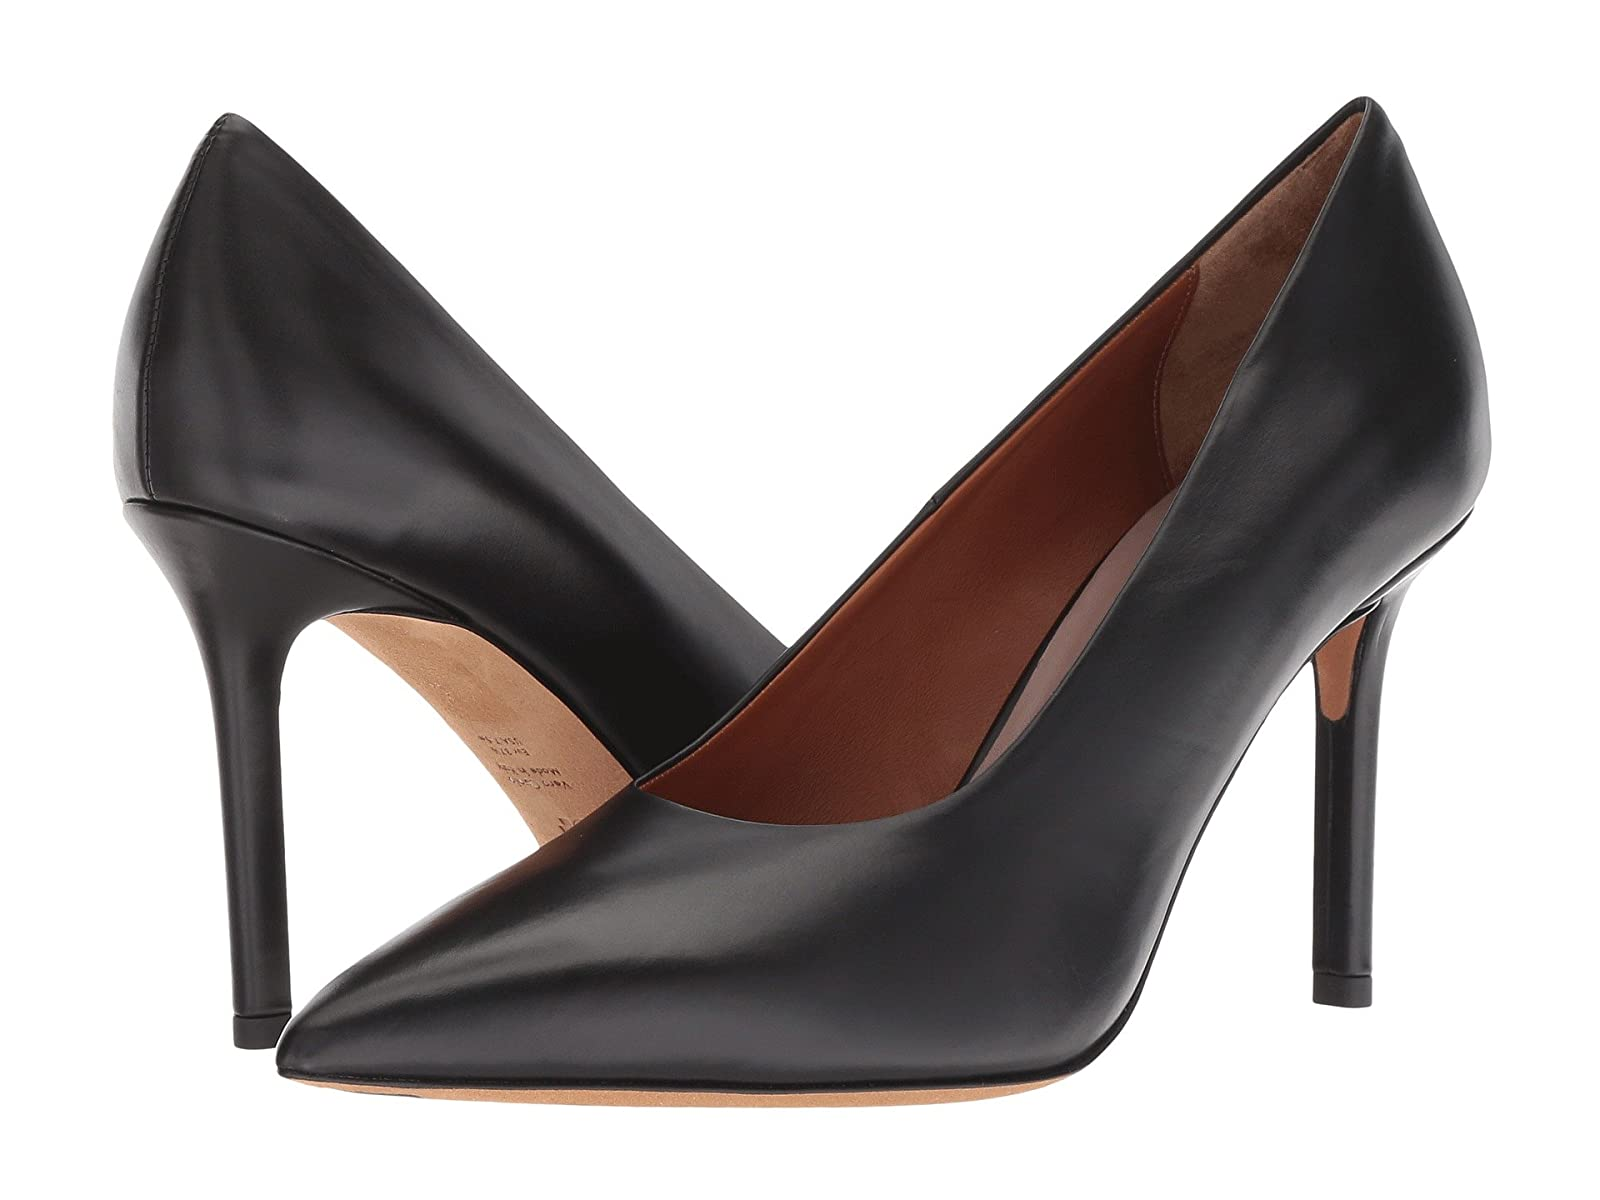 Diane von Furstenberg ViolettaAtmospheric grades have affordable shoes